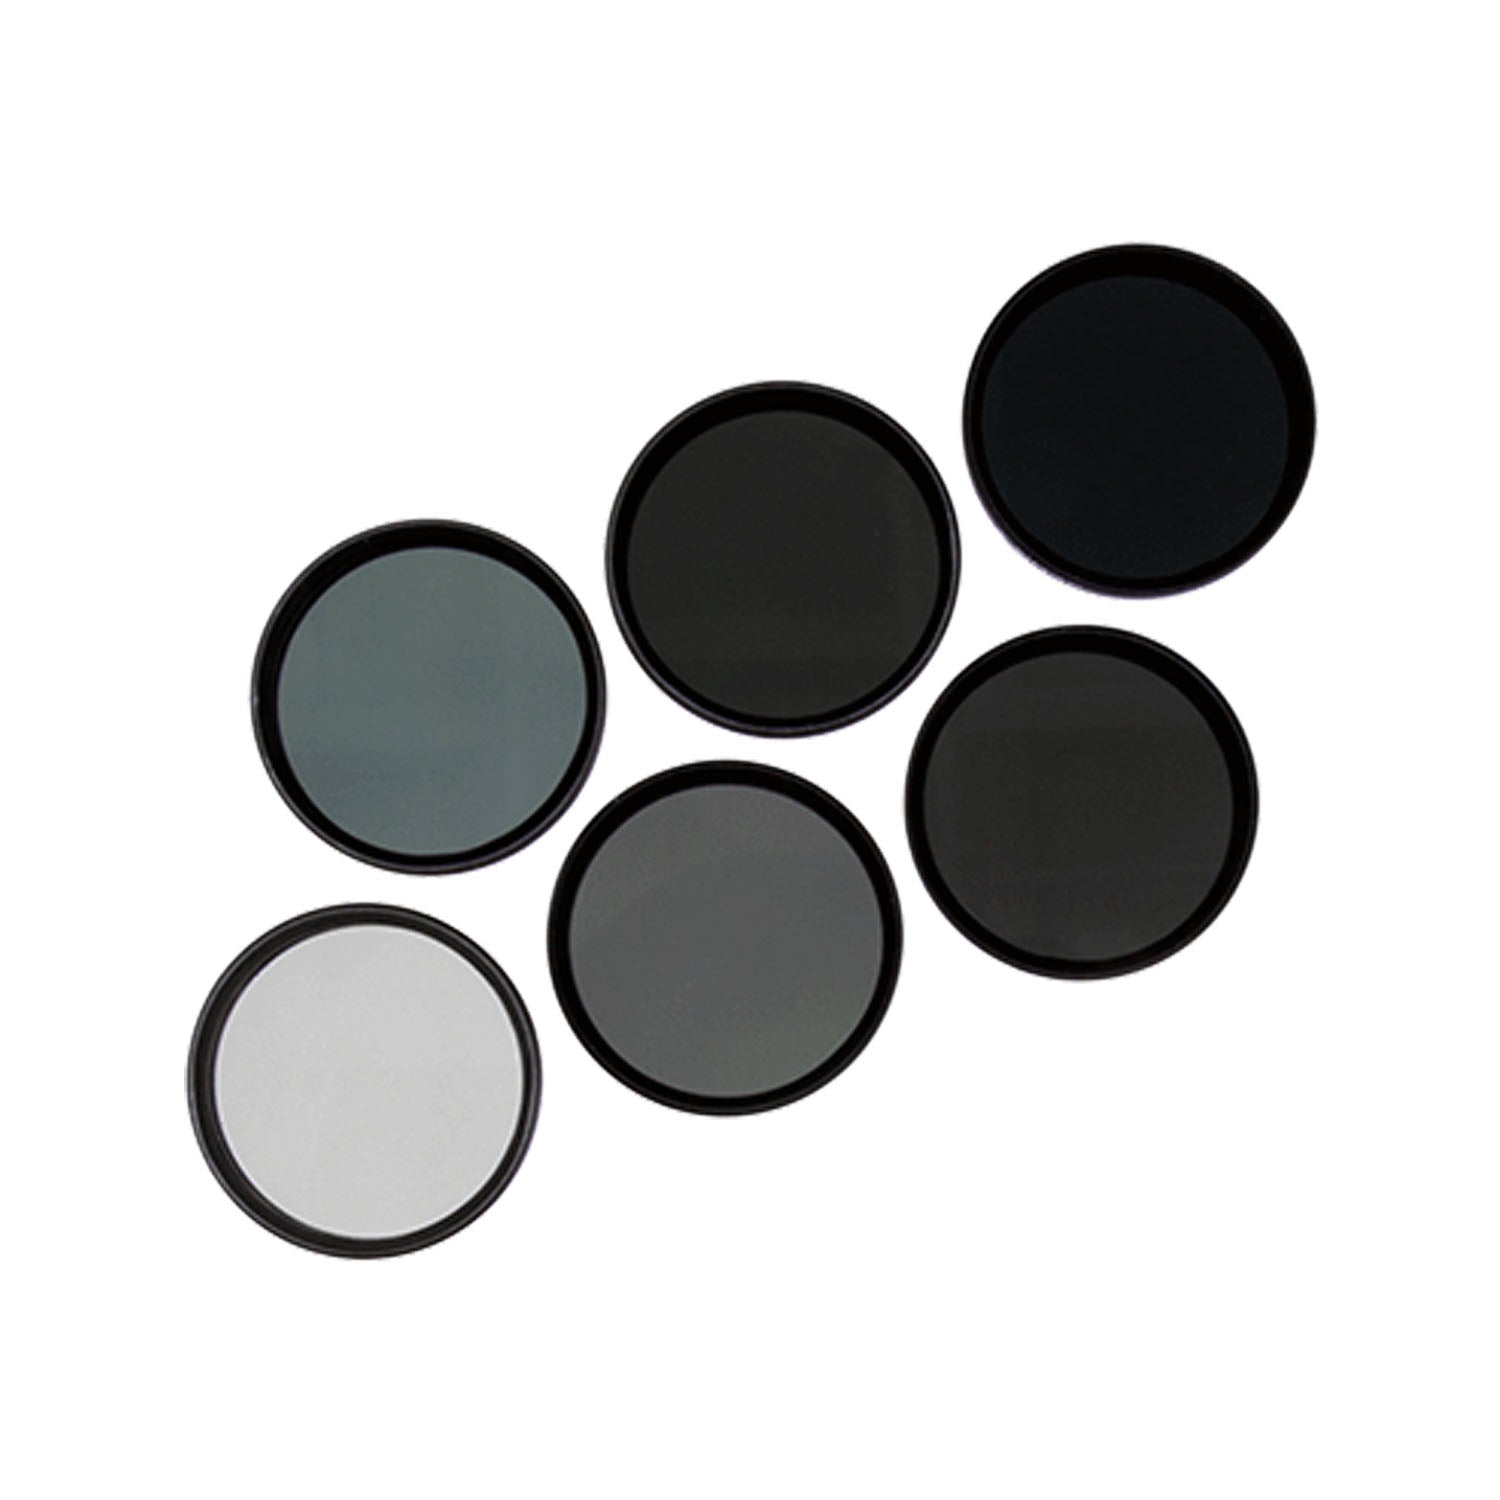 PolarPro DJI Zenmuse X3 Filter 6-Pack for Inspire 1 or Osmo